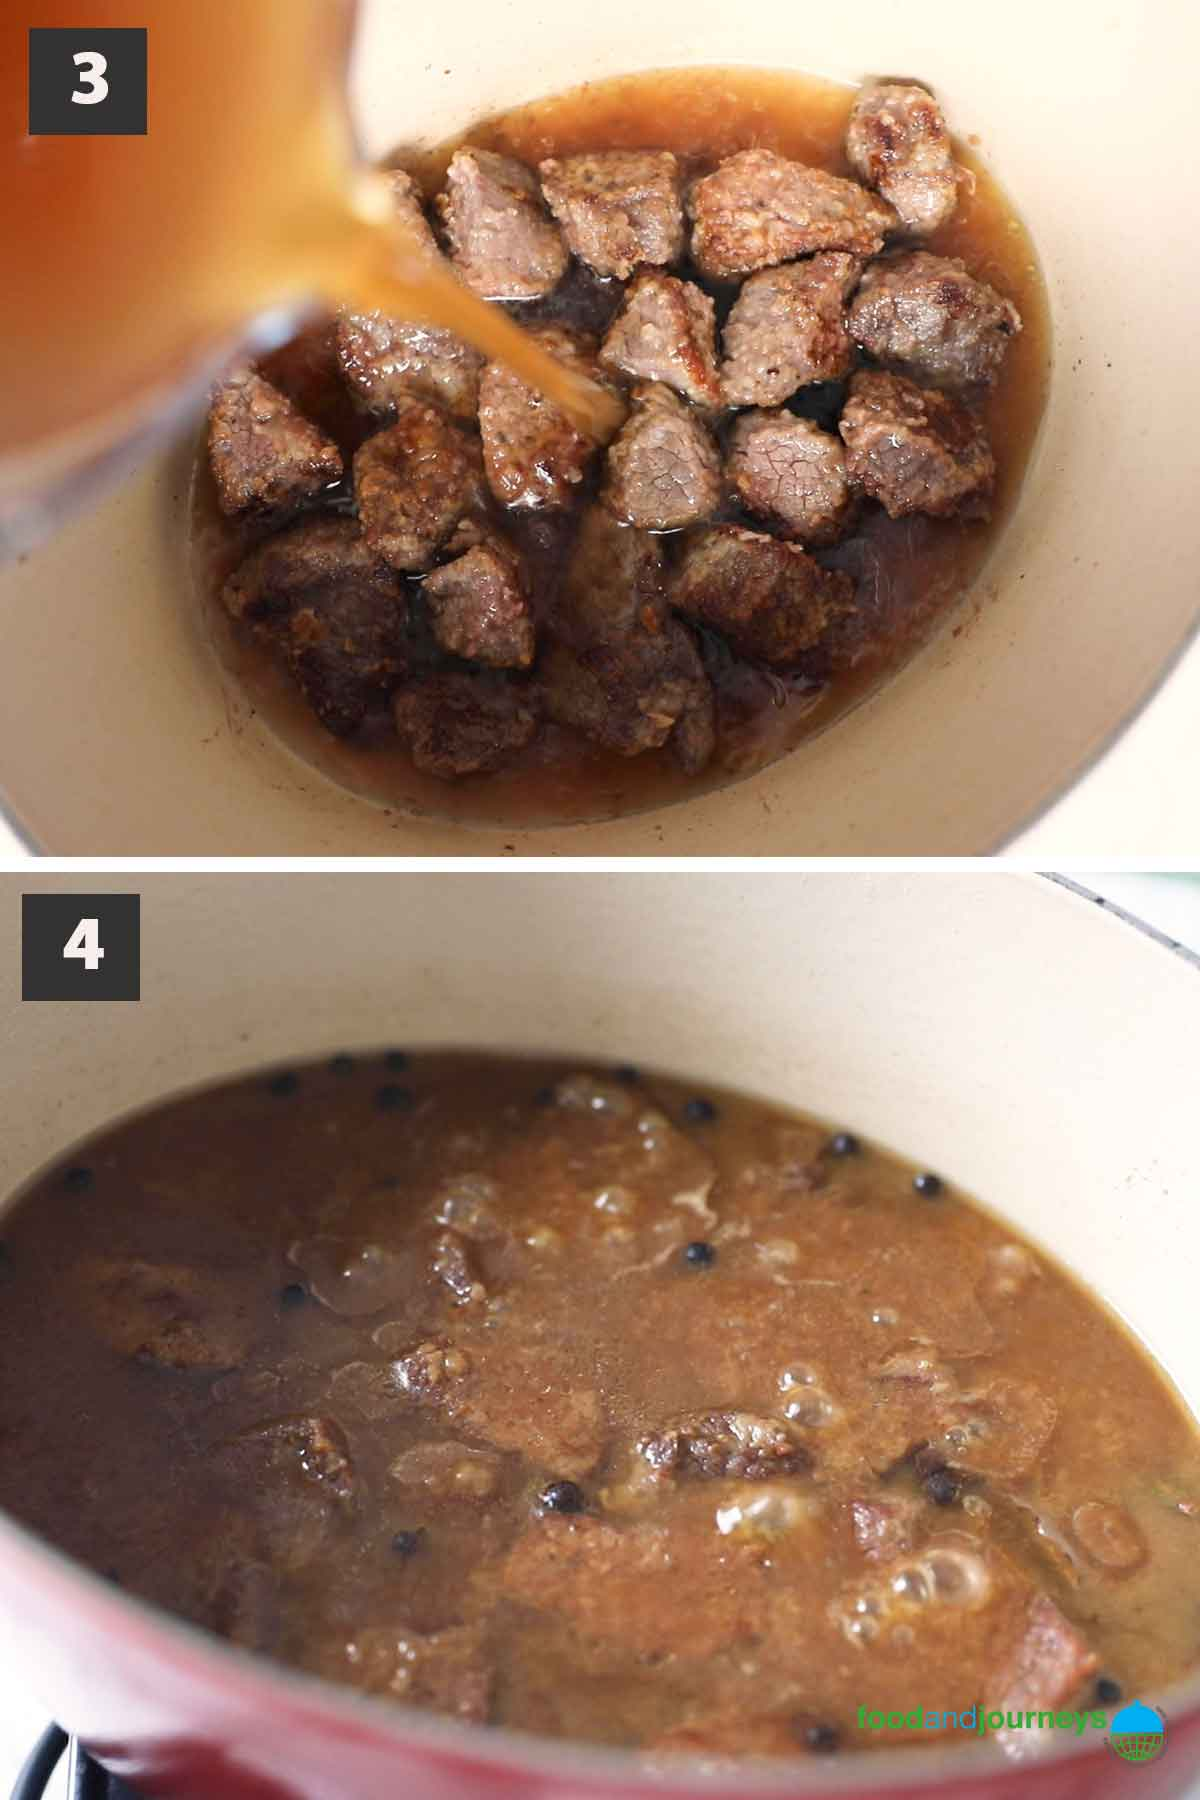 Second part of a collage of images showing the step by step process on how to prepare Swedish allspice stew at home.